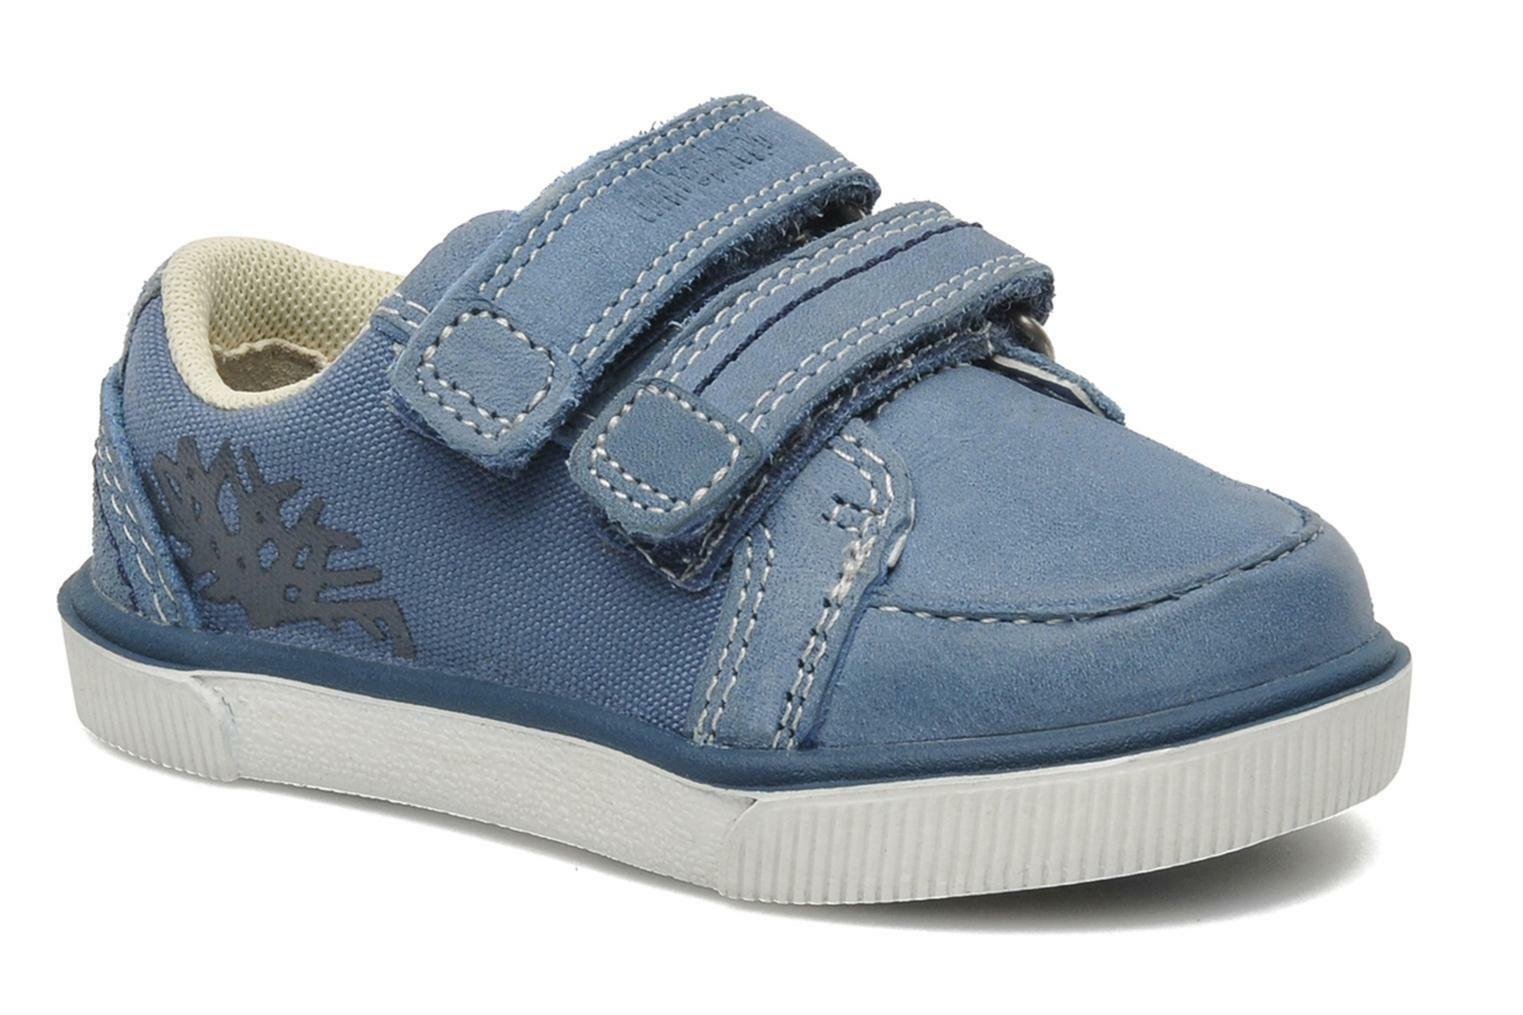 Timberland Infants Boys Slmcpsl Blue Trainers Shoes